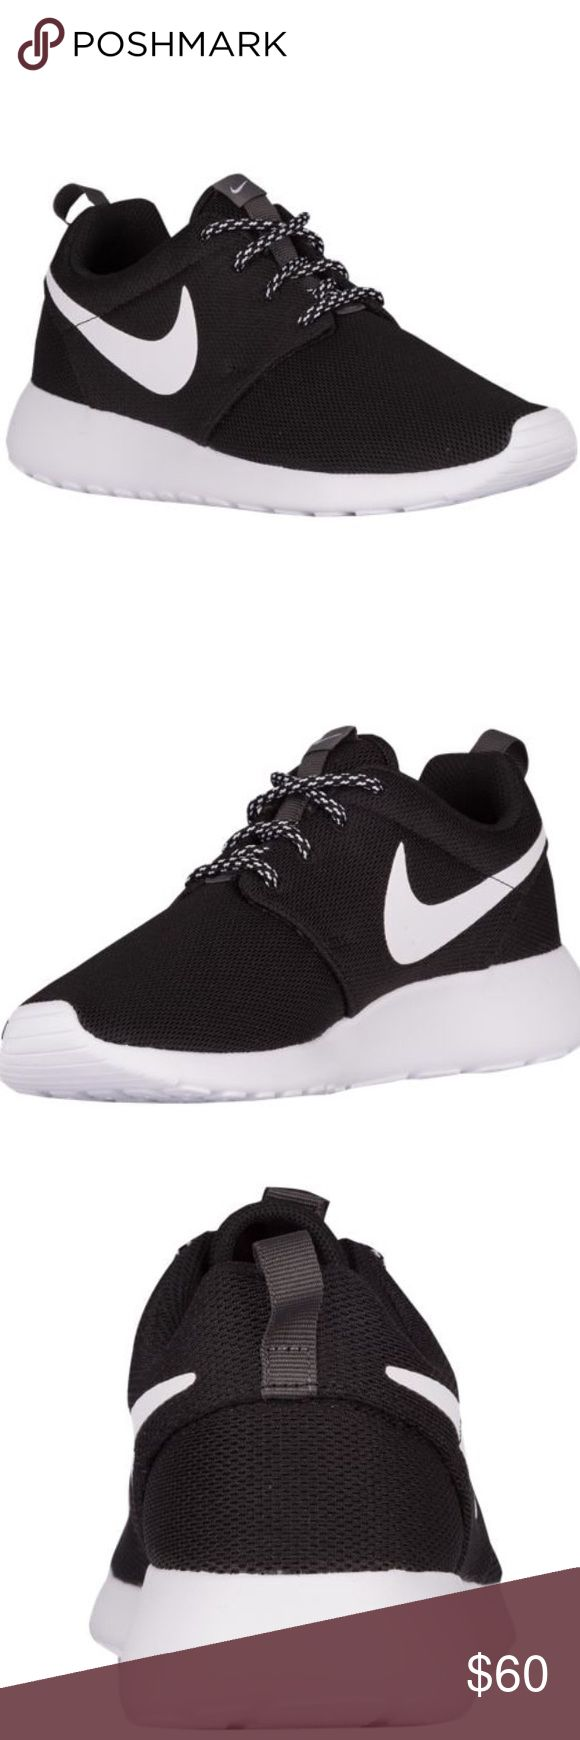 Mens Nike Roshe Black and white  Worn once  Very comfortable  Selling due to being a half size too big  Smoke free home Great condition Nike Shoes Athletic Shoes